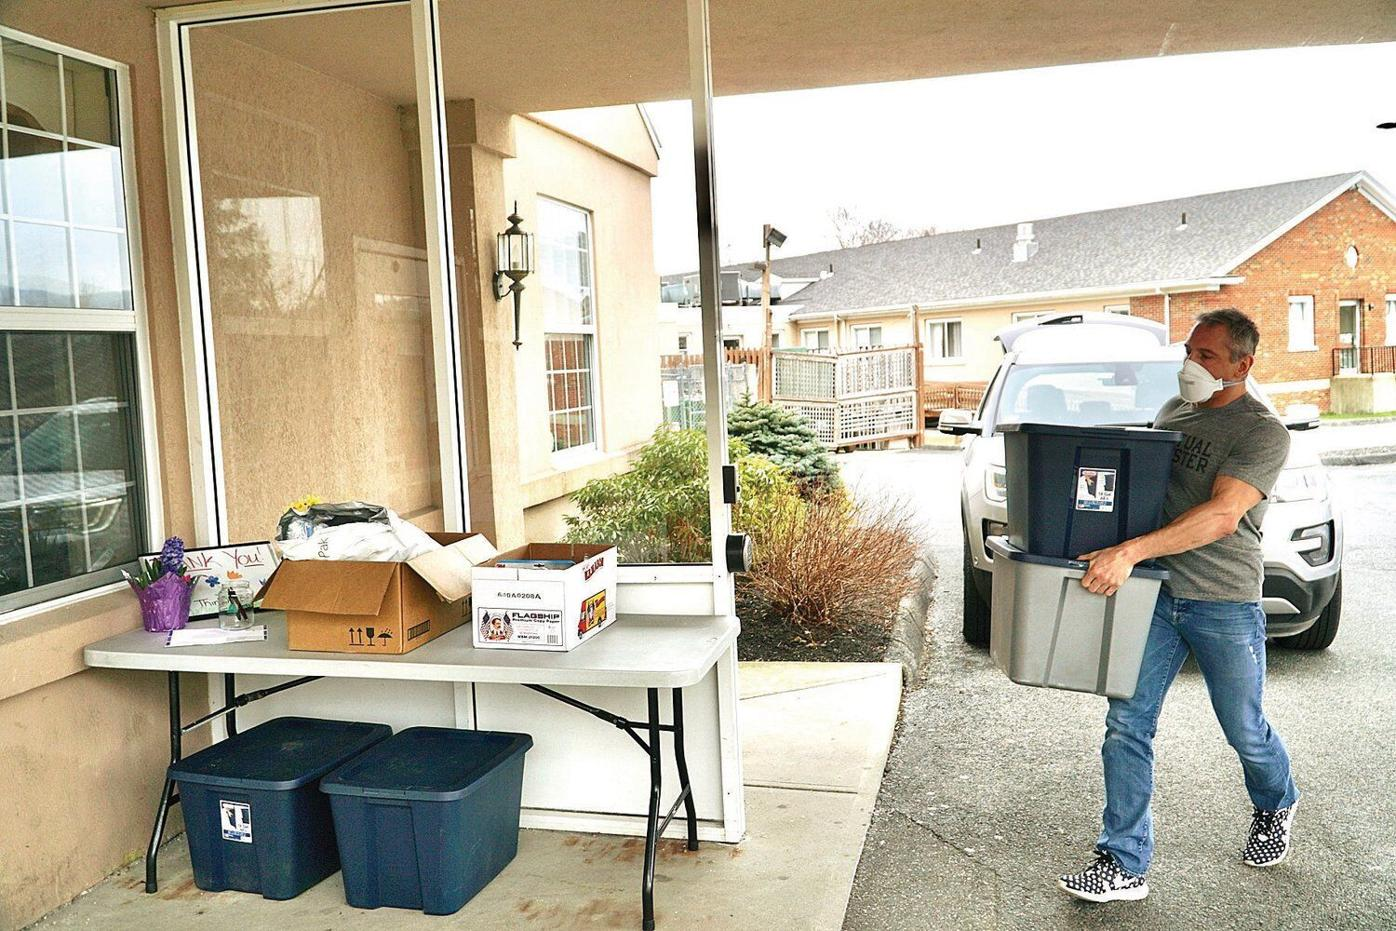 Dalton resident gathers up, delivers supplies in Berkshires amid national shortages